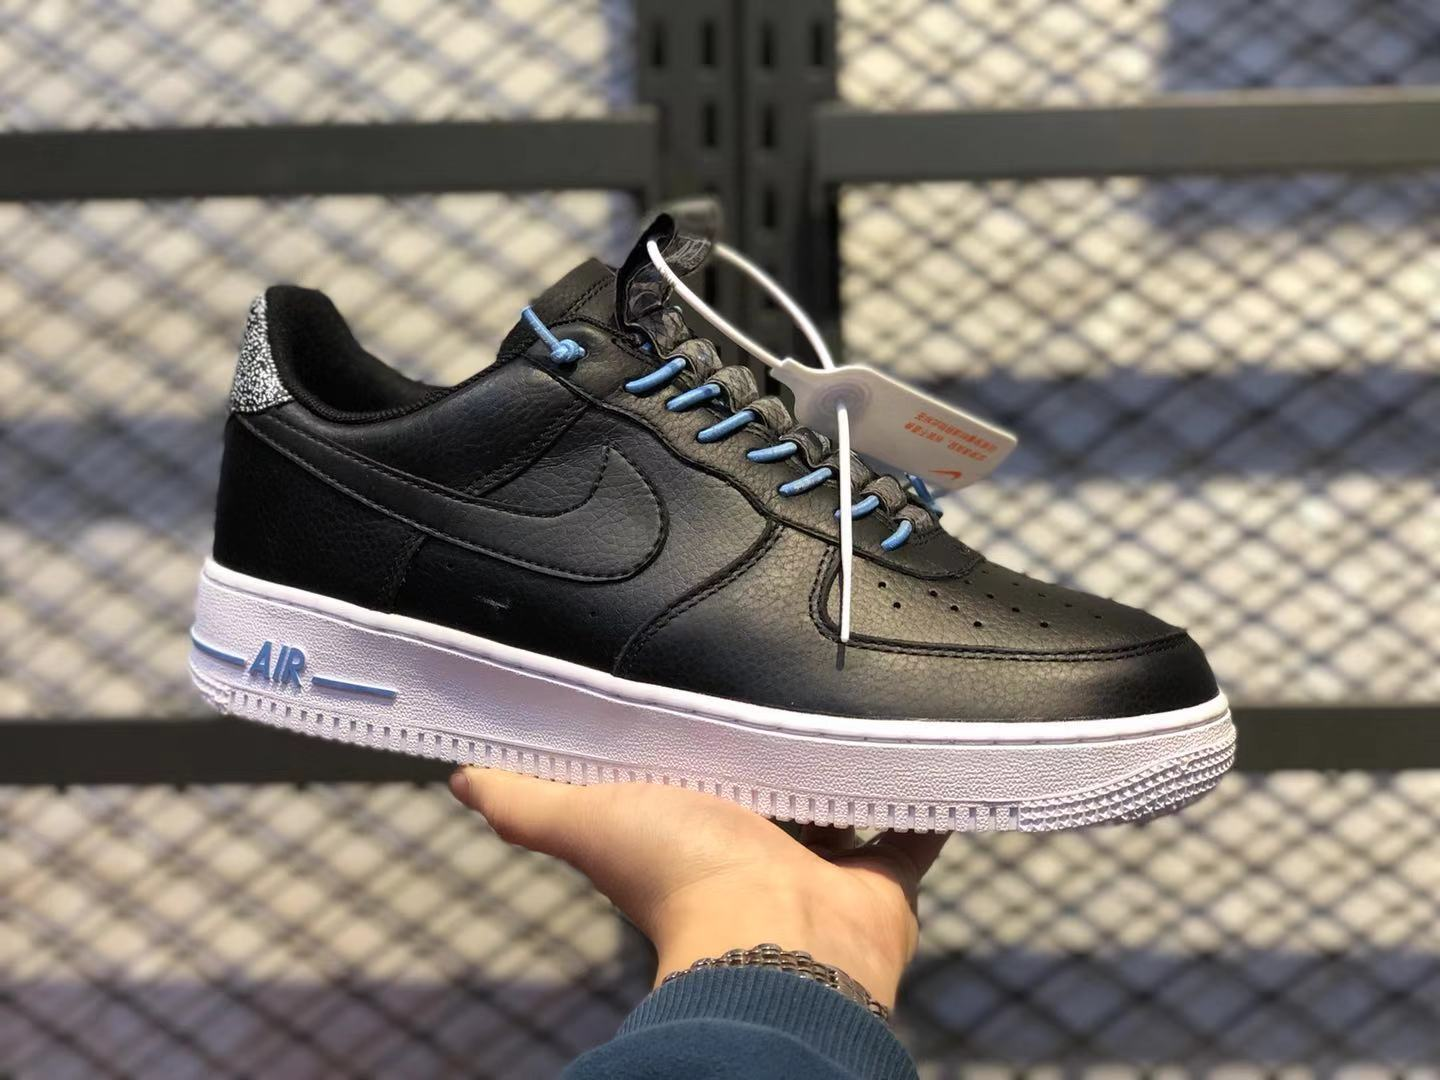 Nike Air Force 1'07 Black/Light Blue-White Casual Shoes 898889-015 Hot Sale